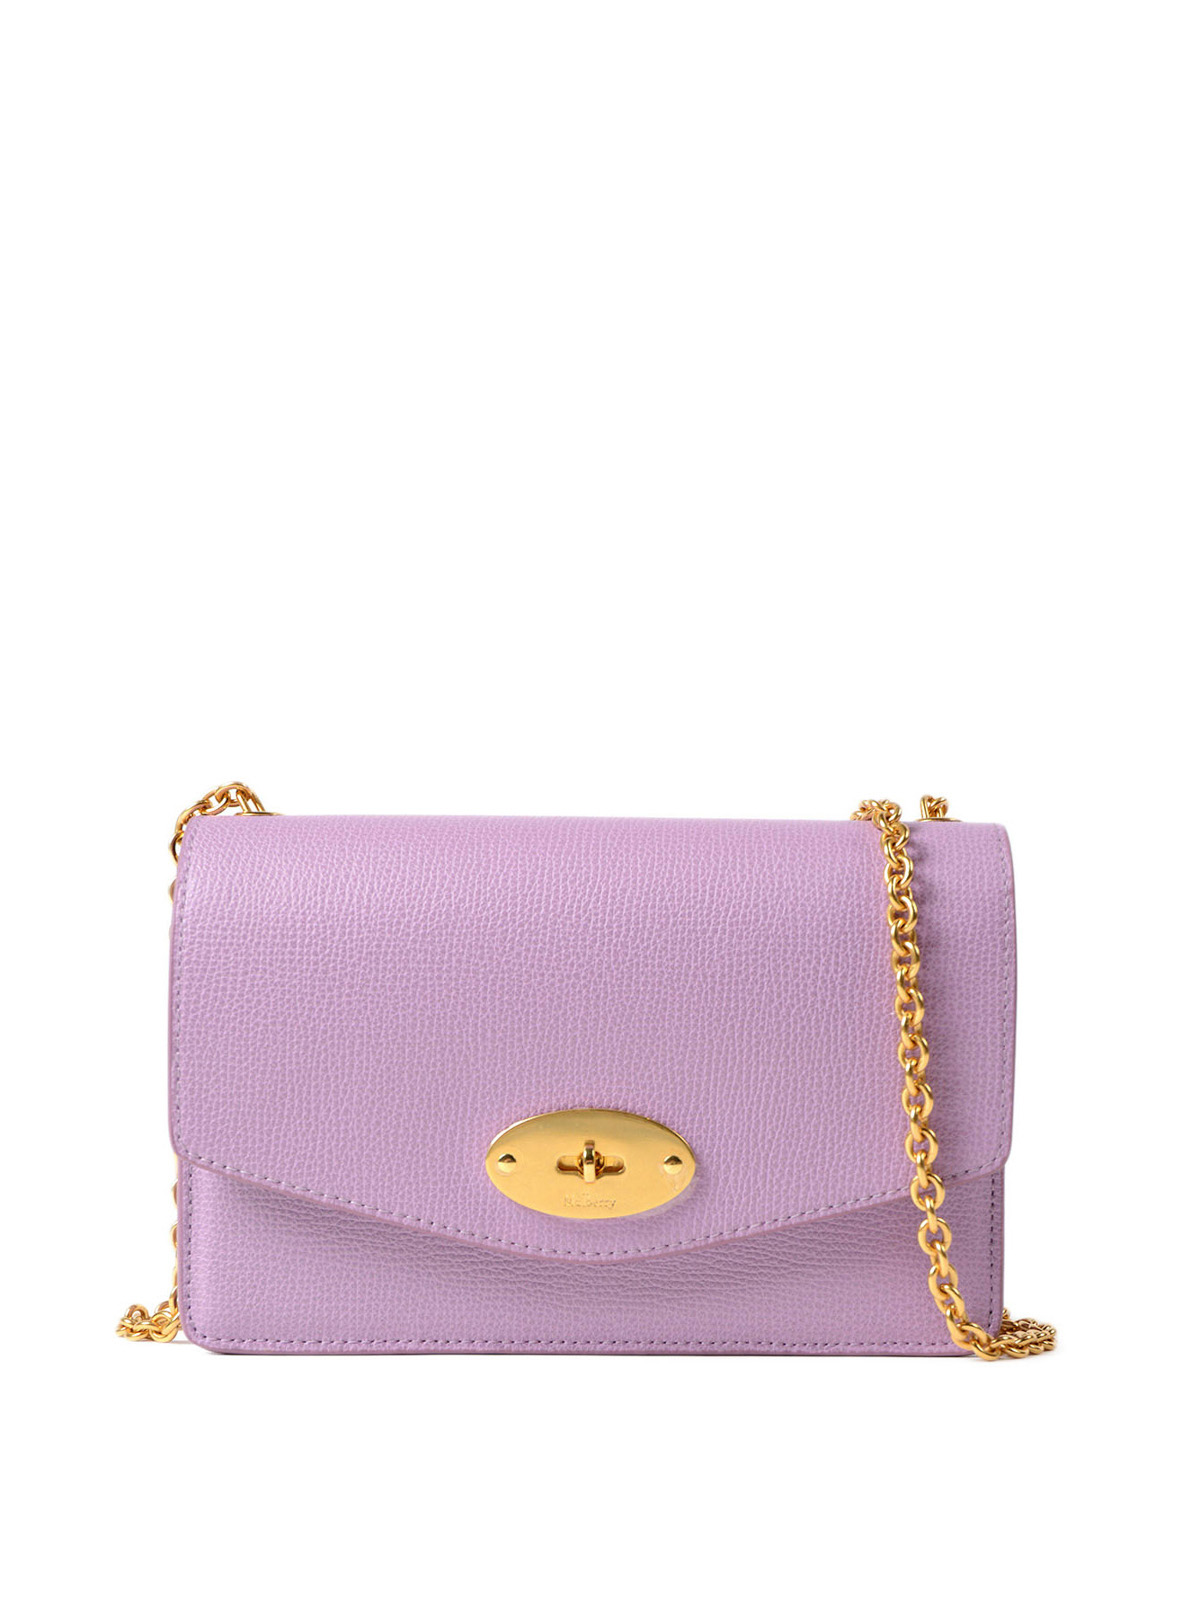 Mulberry - Darley lilac leather small clutch - clutches - RL5270690V110 9772379962781